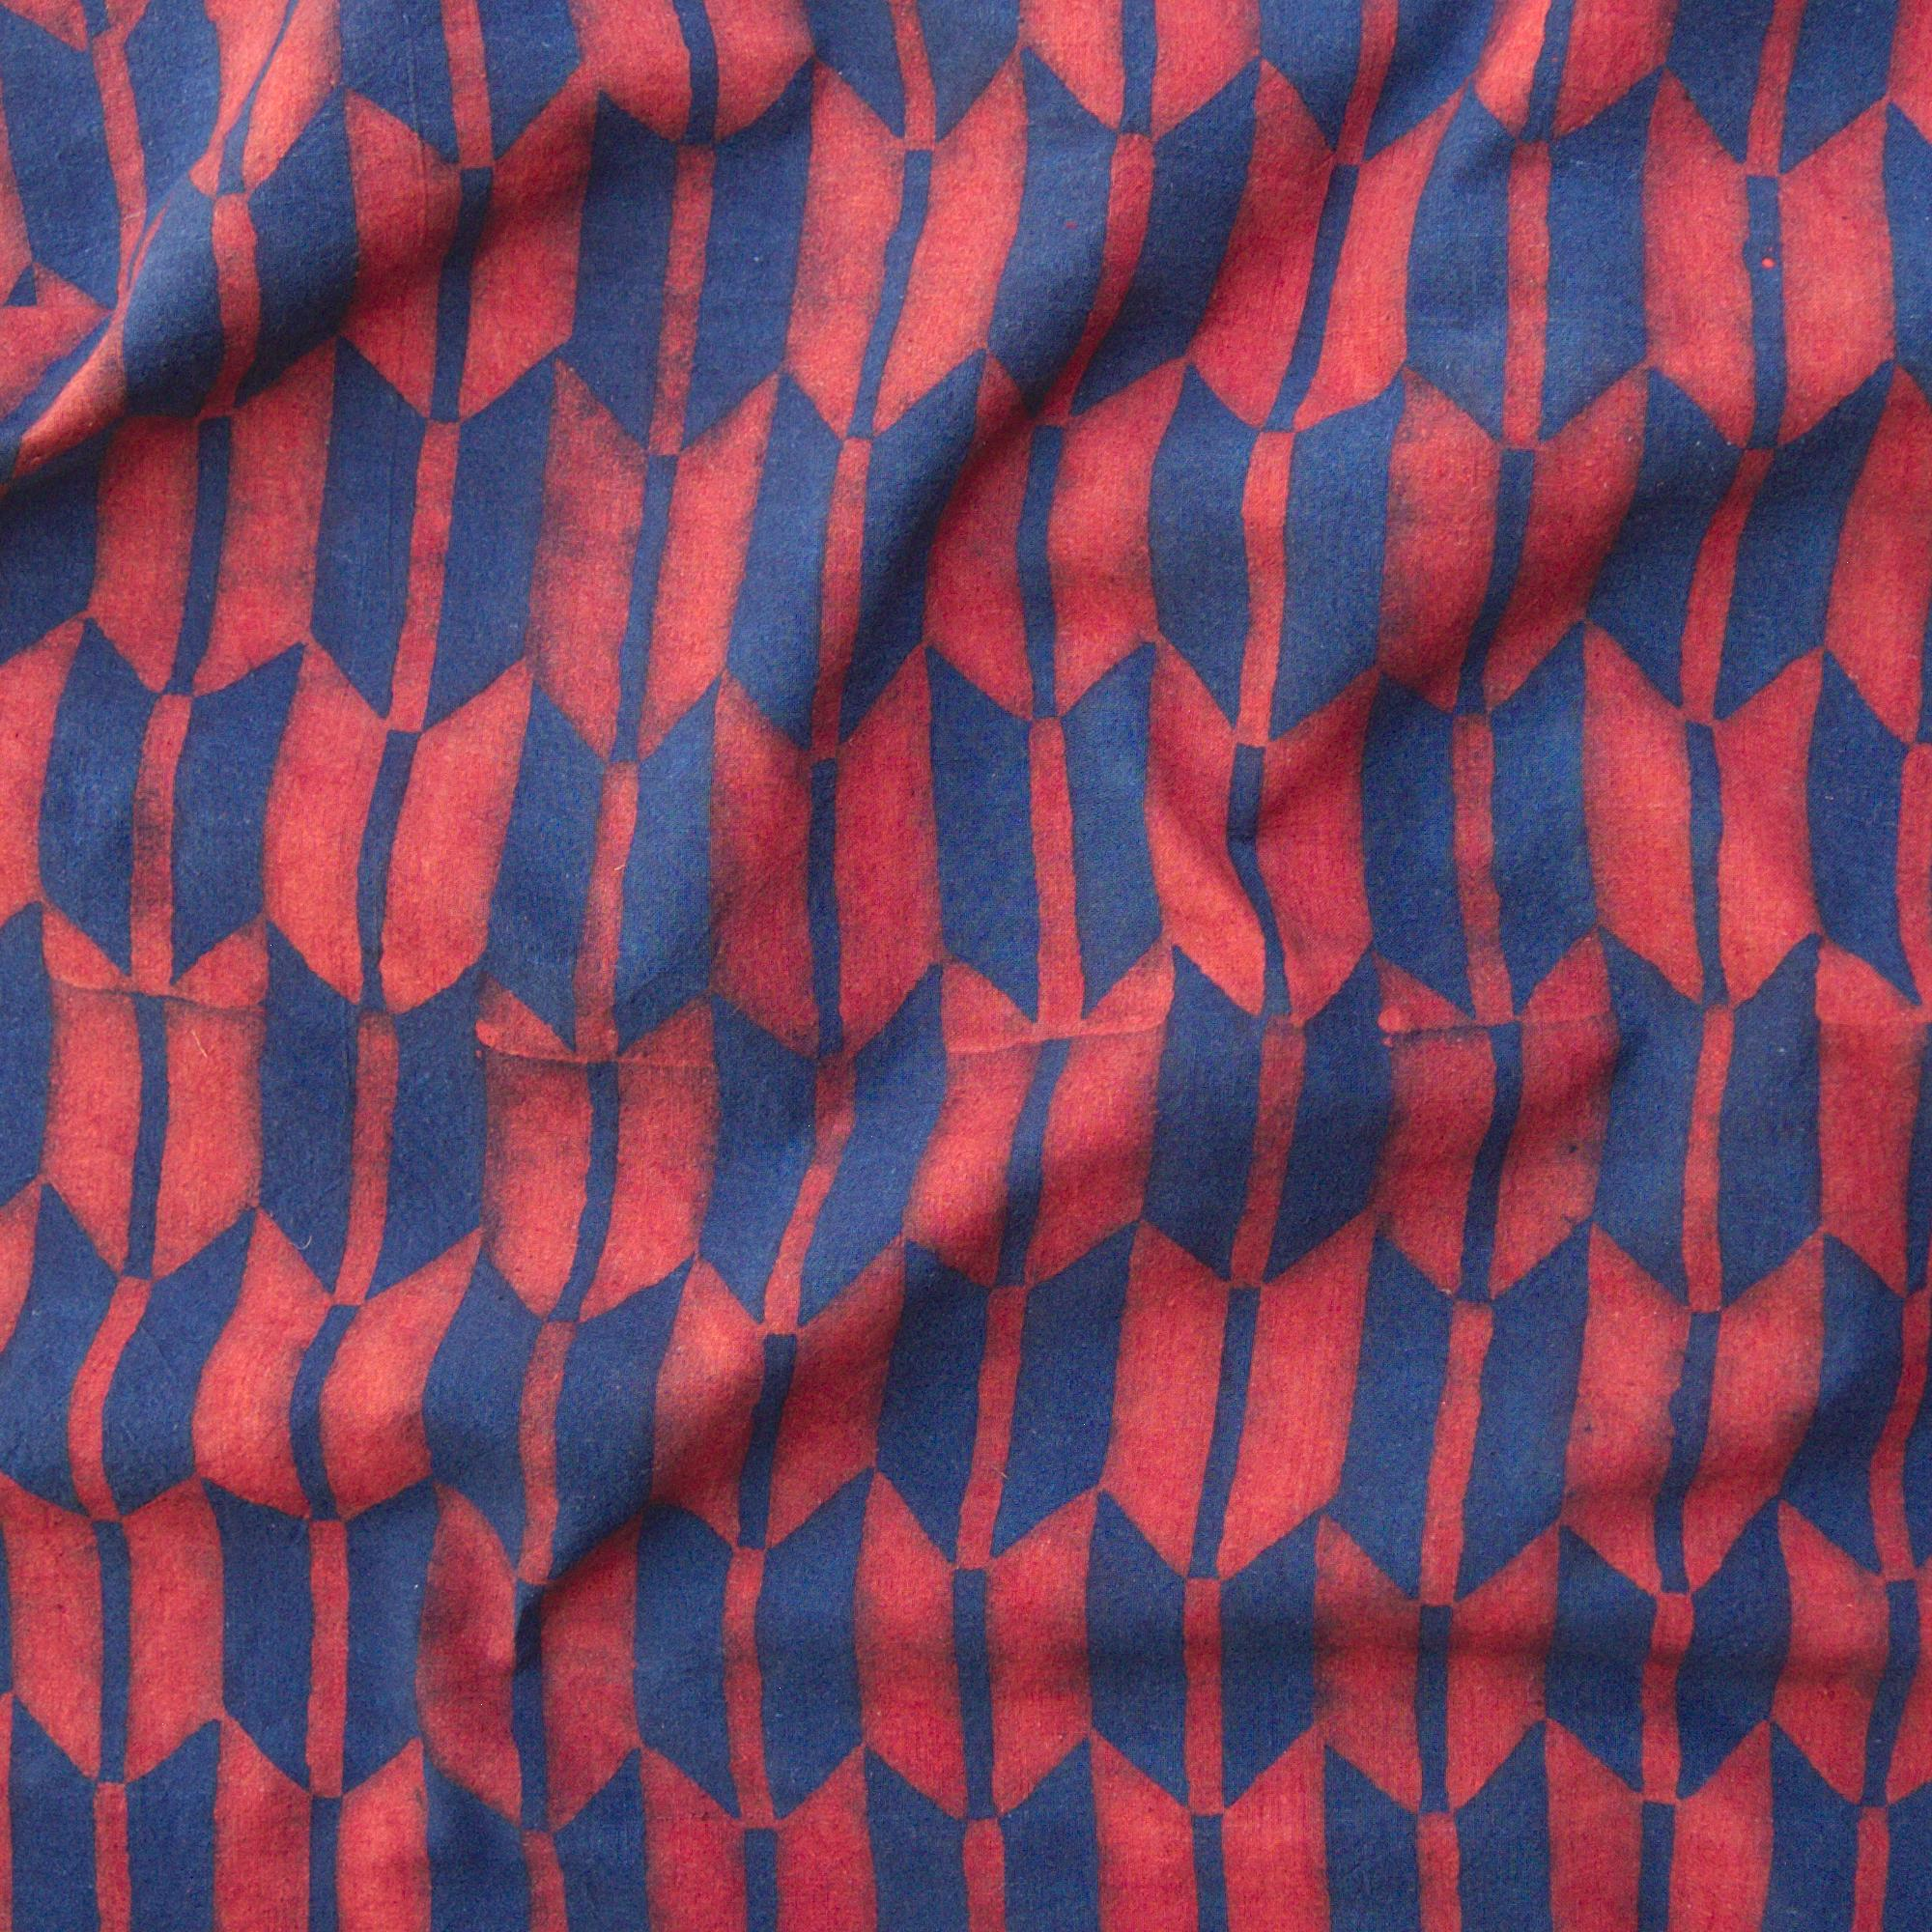 100% Block-Printed Cotton Fabric From India- Ajrak - Indigo Alizarin Fletching Print - Contrast